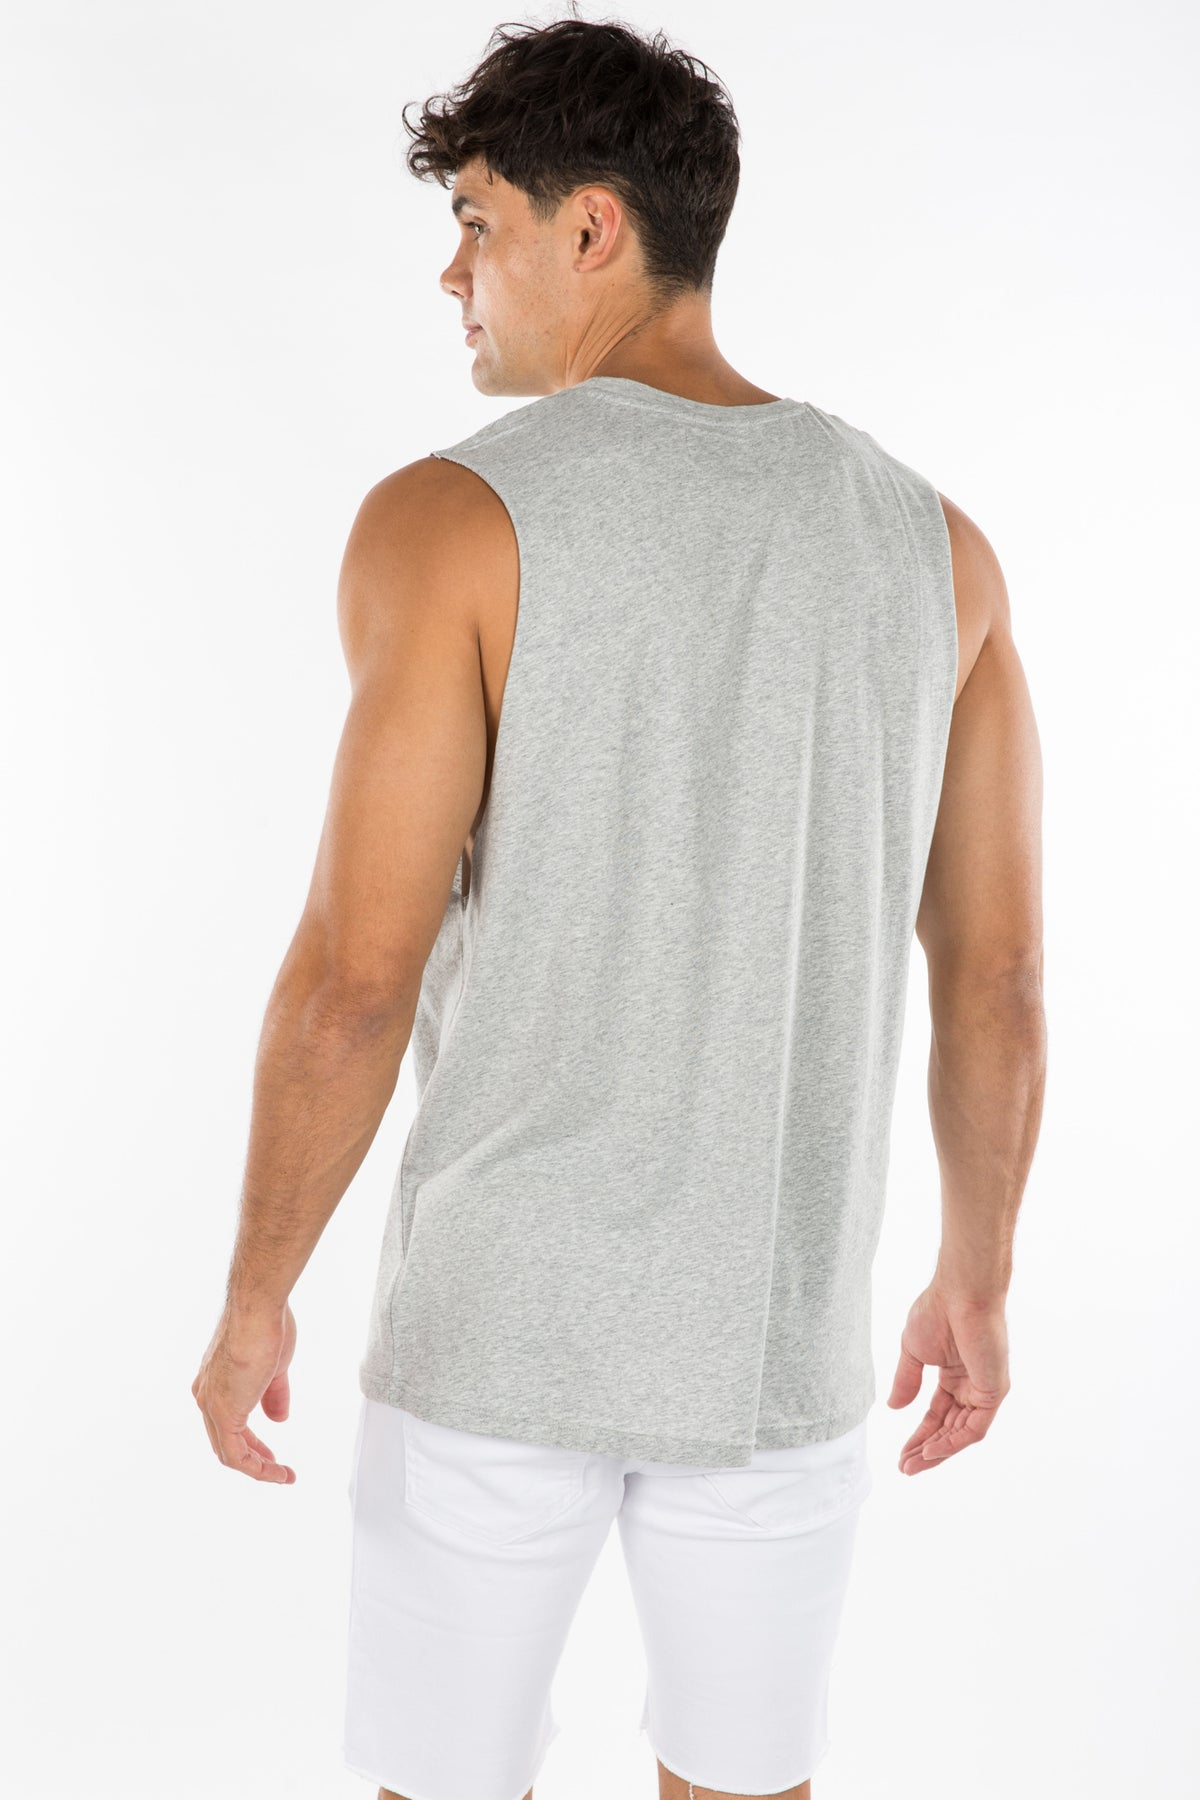 NTH Soft Wash Tank Grey